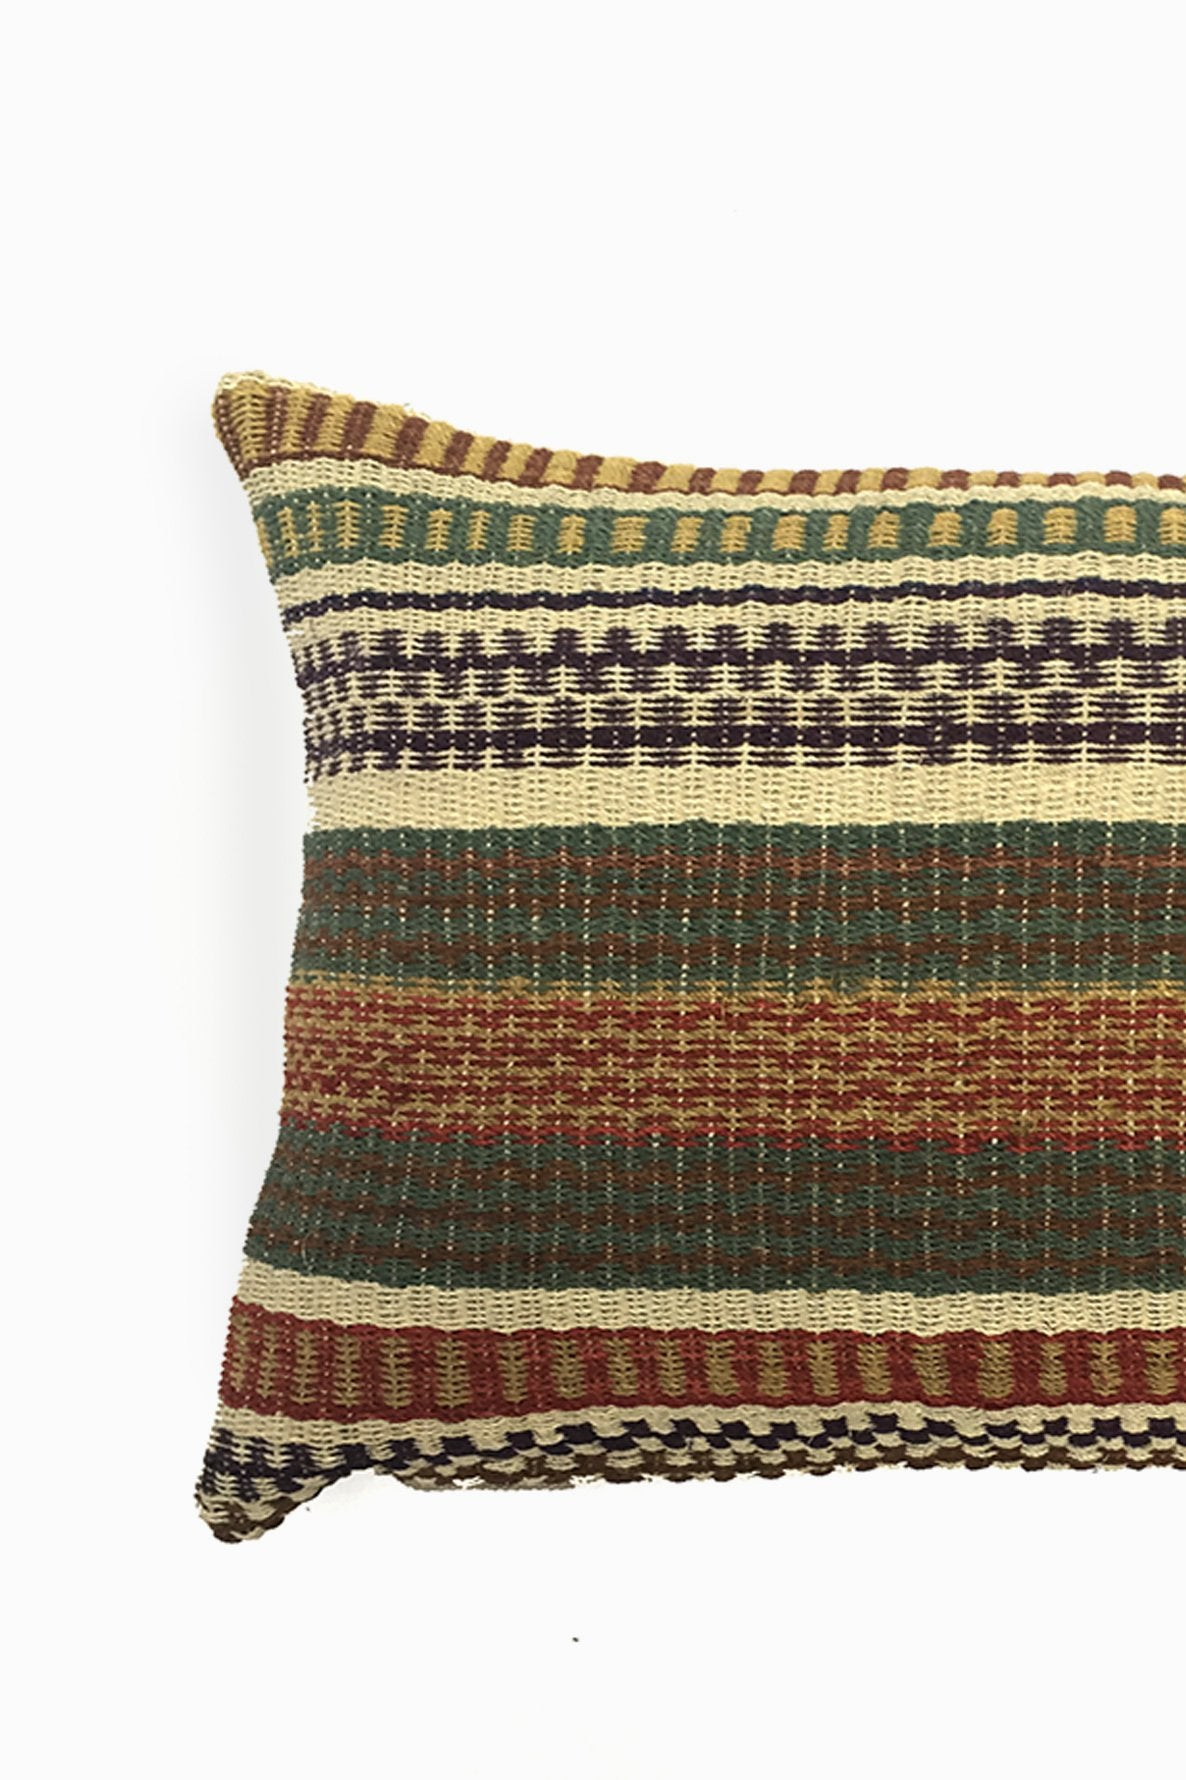 Close up of Multicolored Chaguar Loom Cushion with Multicolored Design Stitching Details.